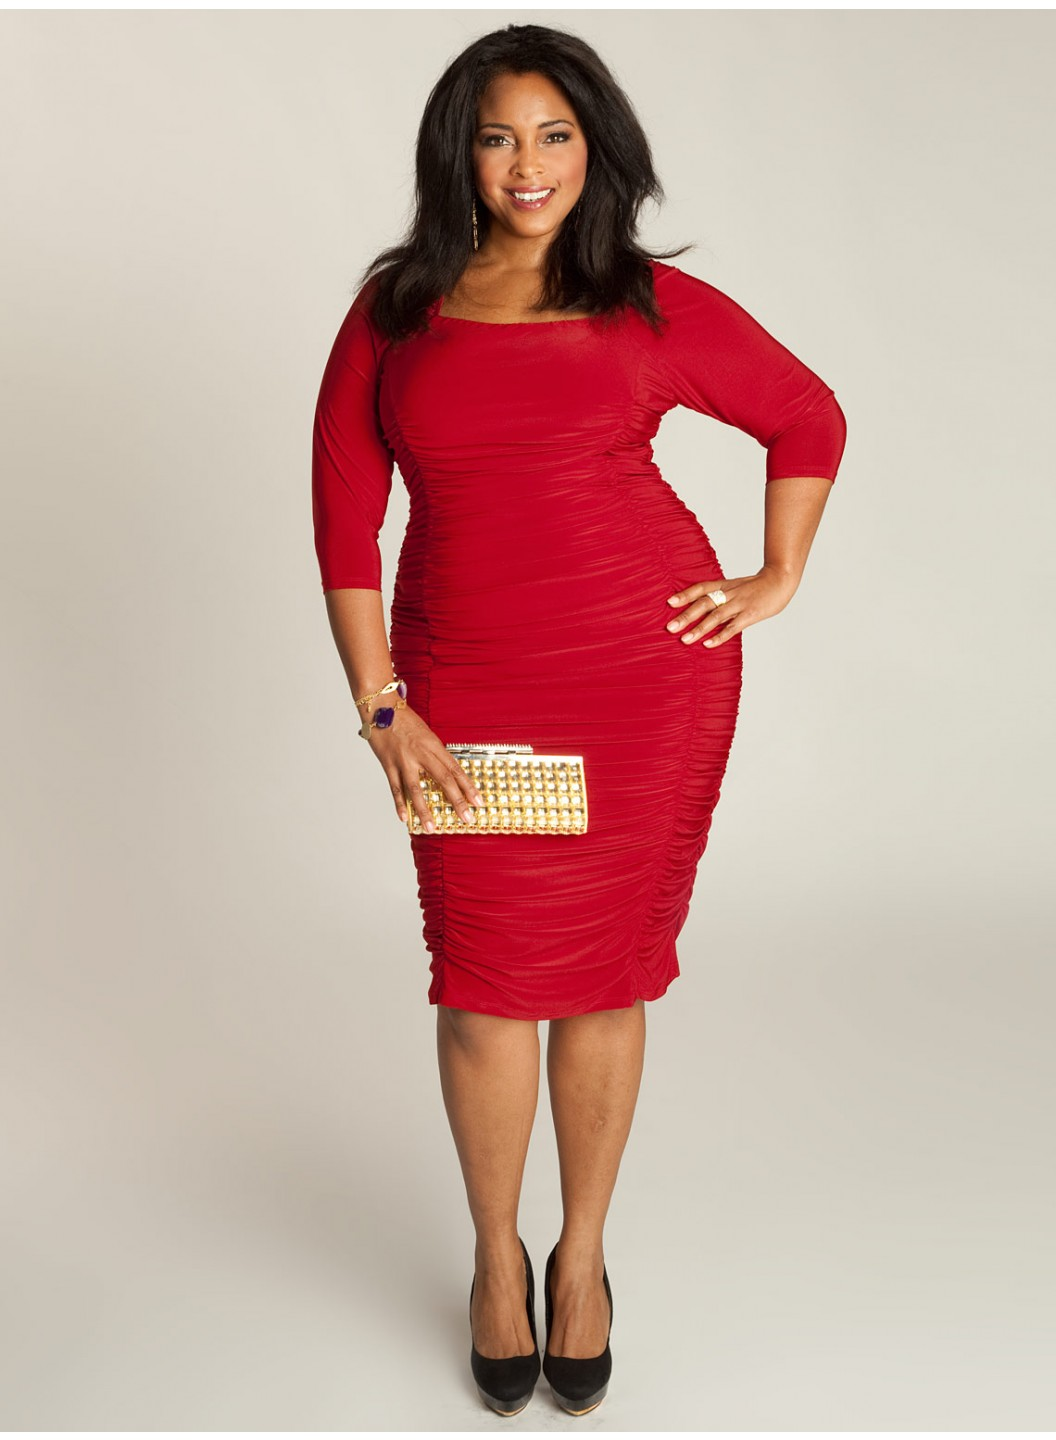 The Styles of Plus-Size Dresses You Can Choose From - Plus ...